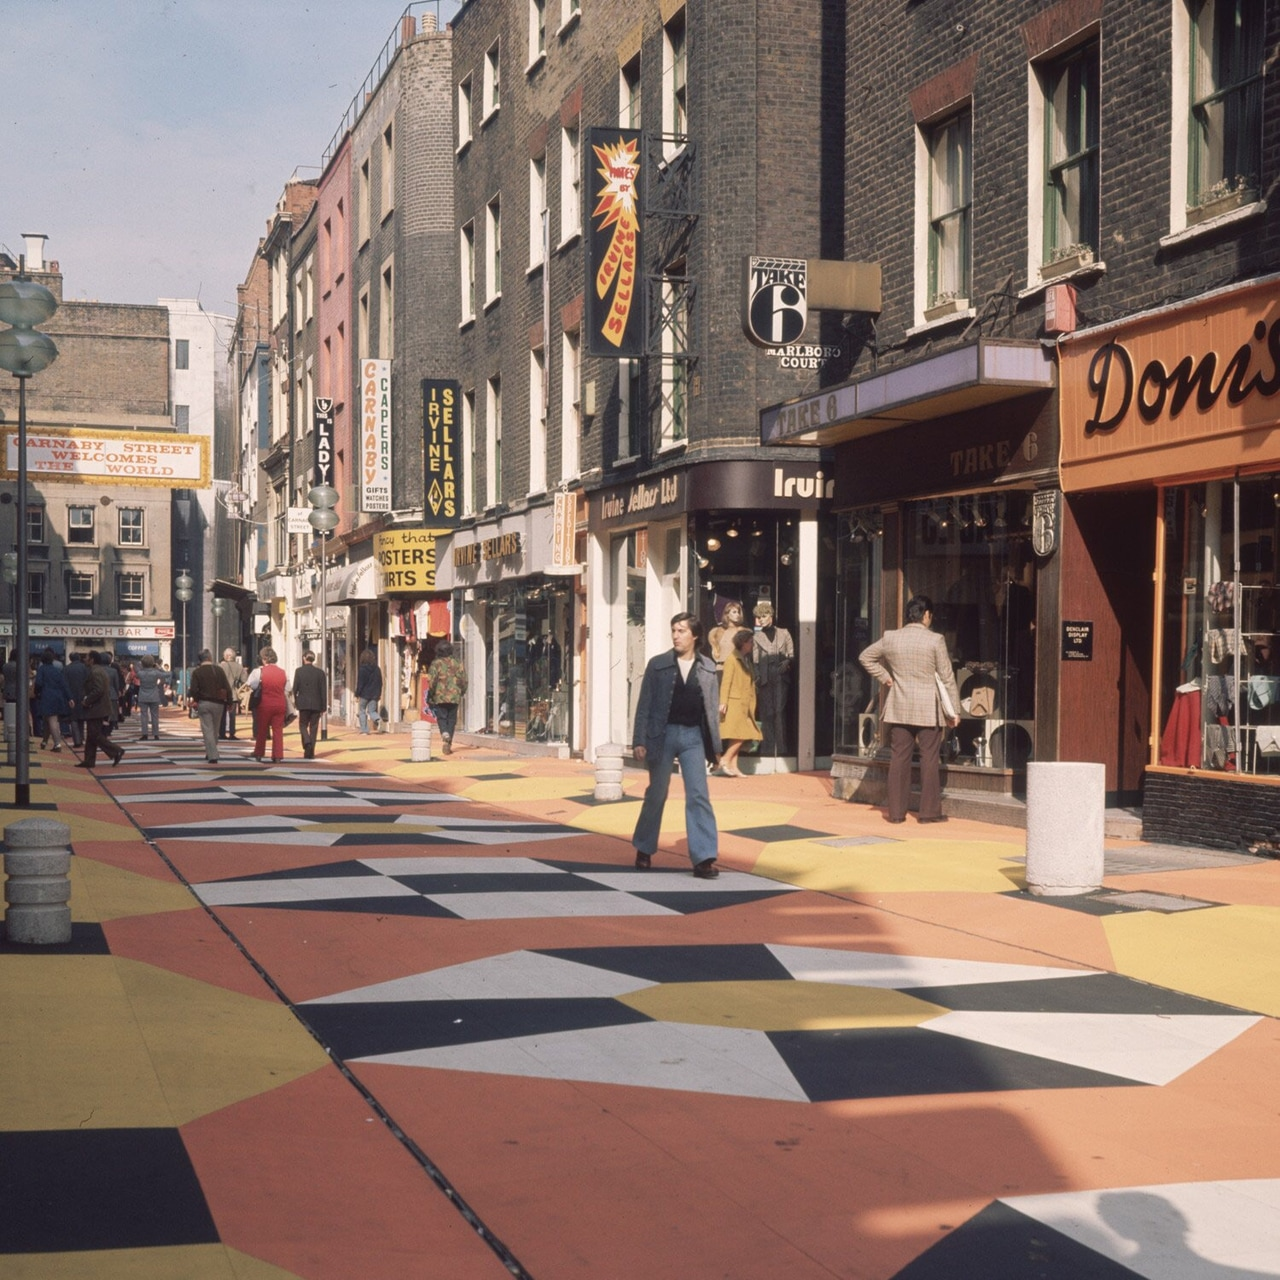 1960s carnaby street, london discovered by the 70s + 80s. 🏄🏼‍♀️